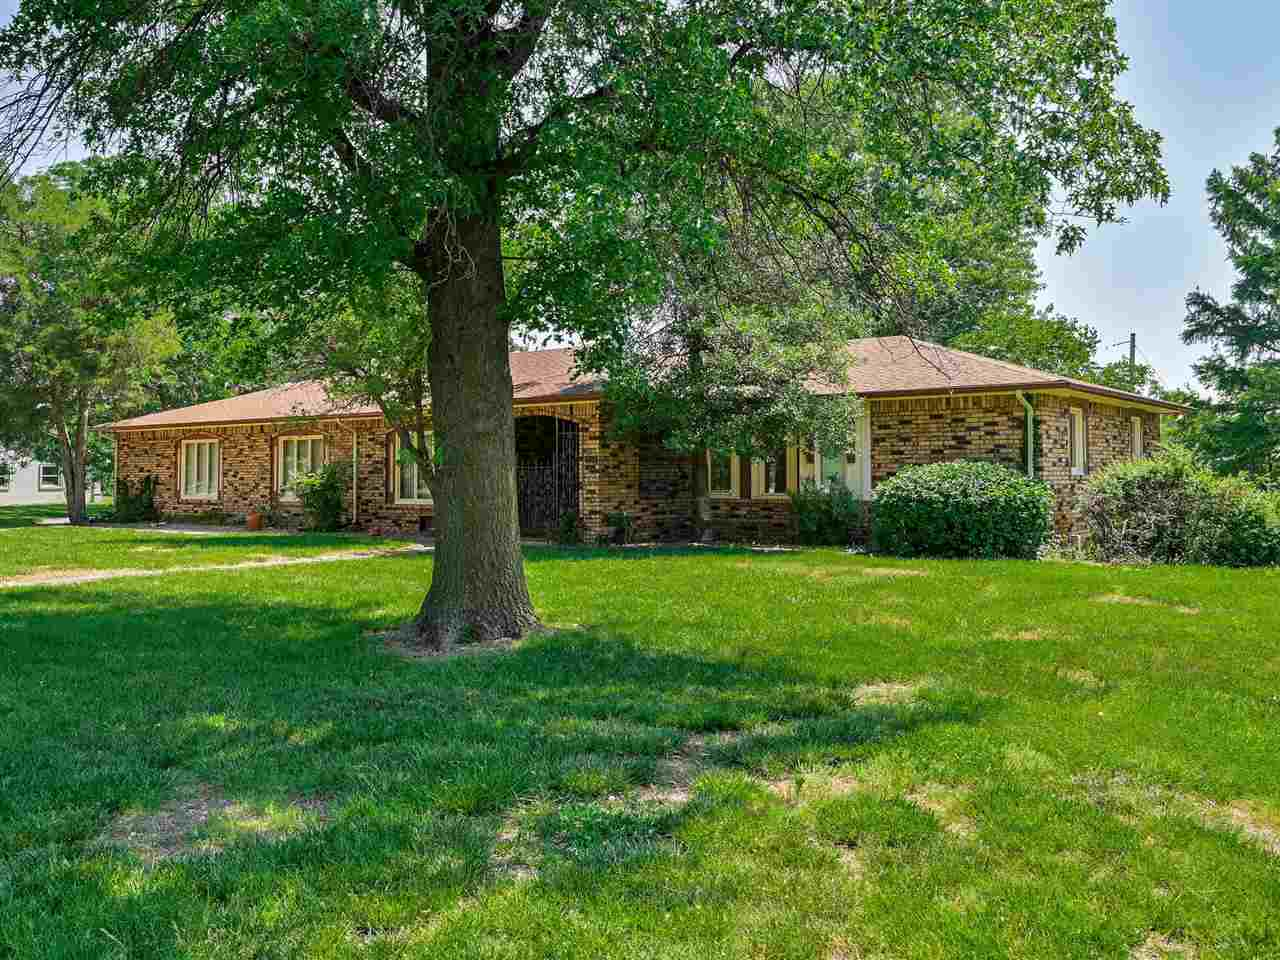 Unique, sprawling ranch brick home on almost one acre of land! This 1970's home offers 4 bedrooms, 3